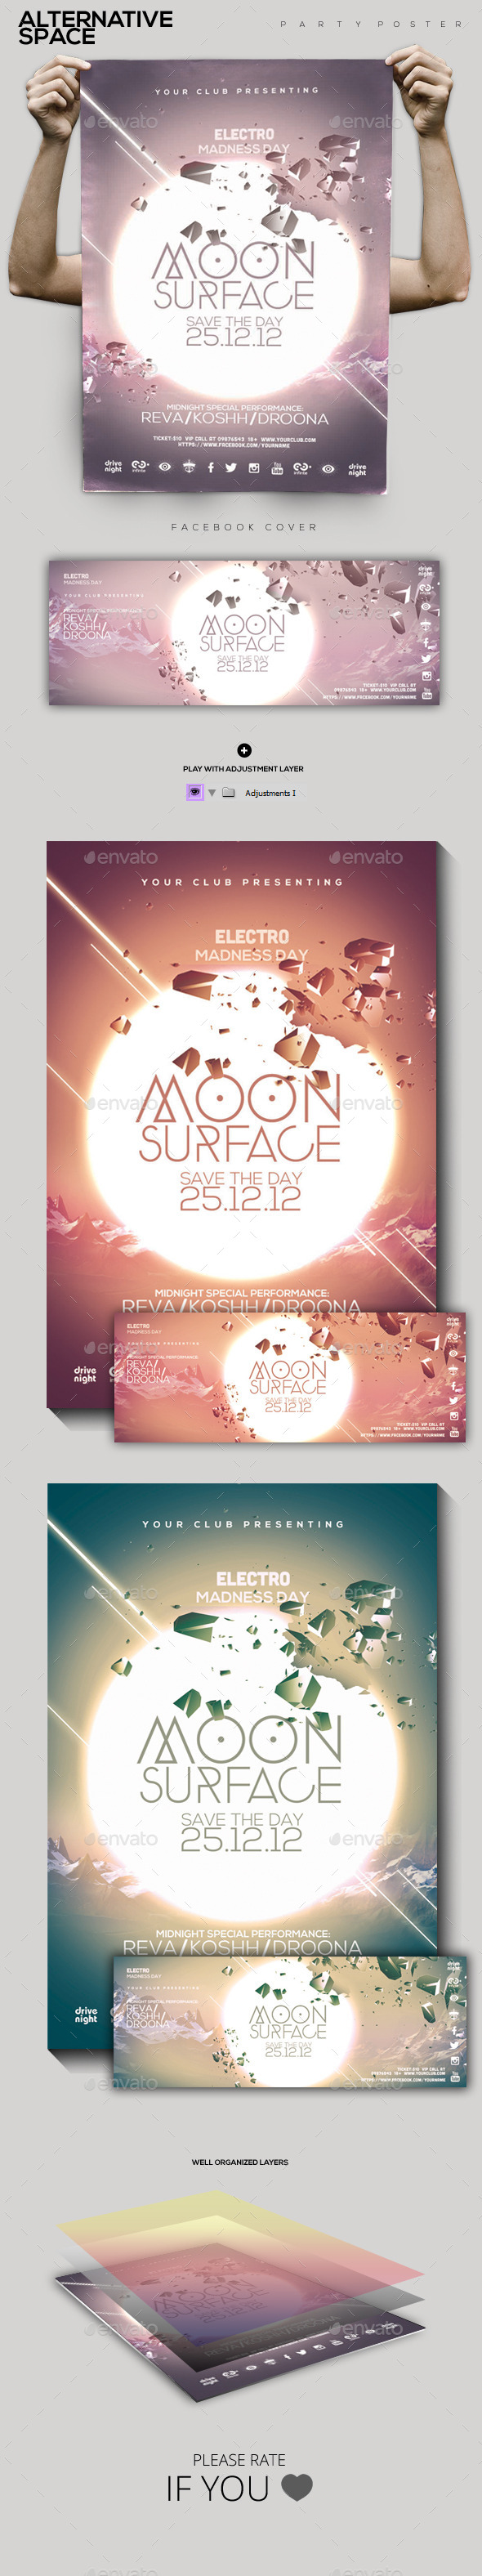 Moon Surface Party Flyer/Poster - Clubs & Parties Events